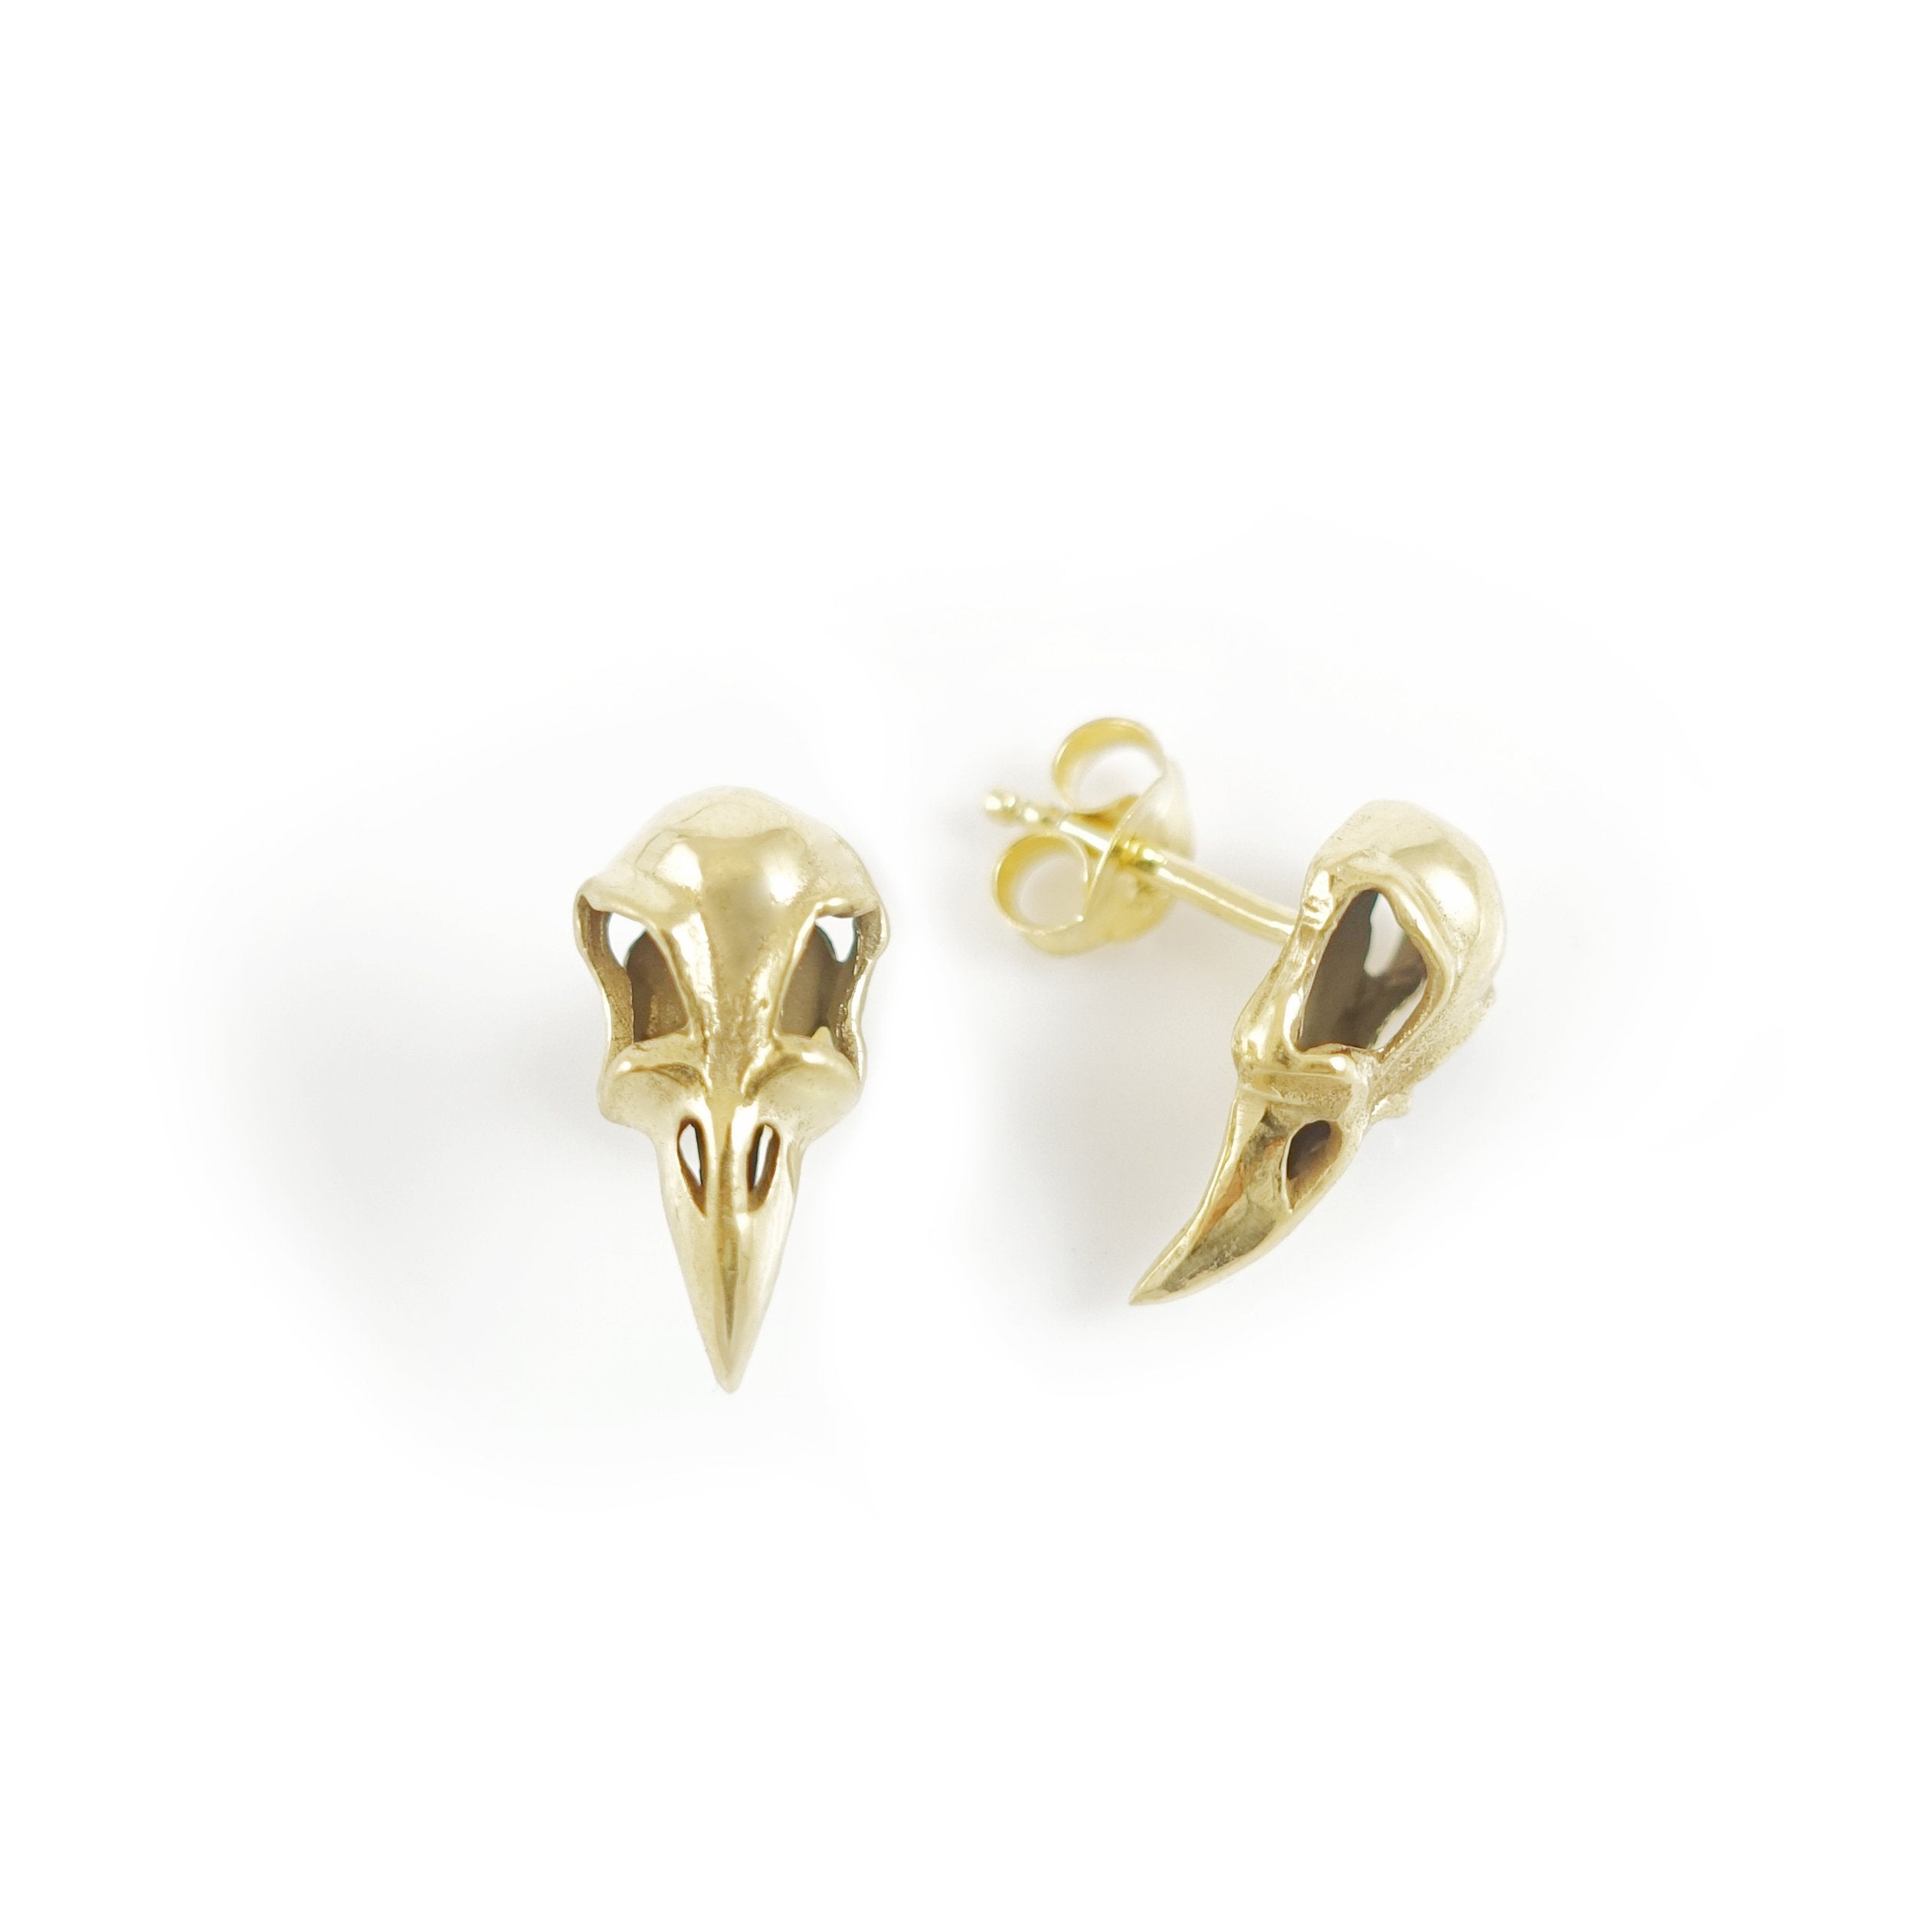 Nick Von K - Raven skull earrings